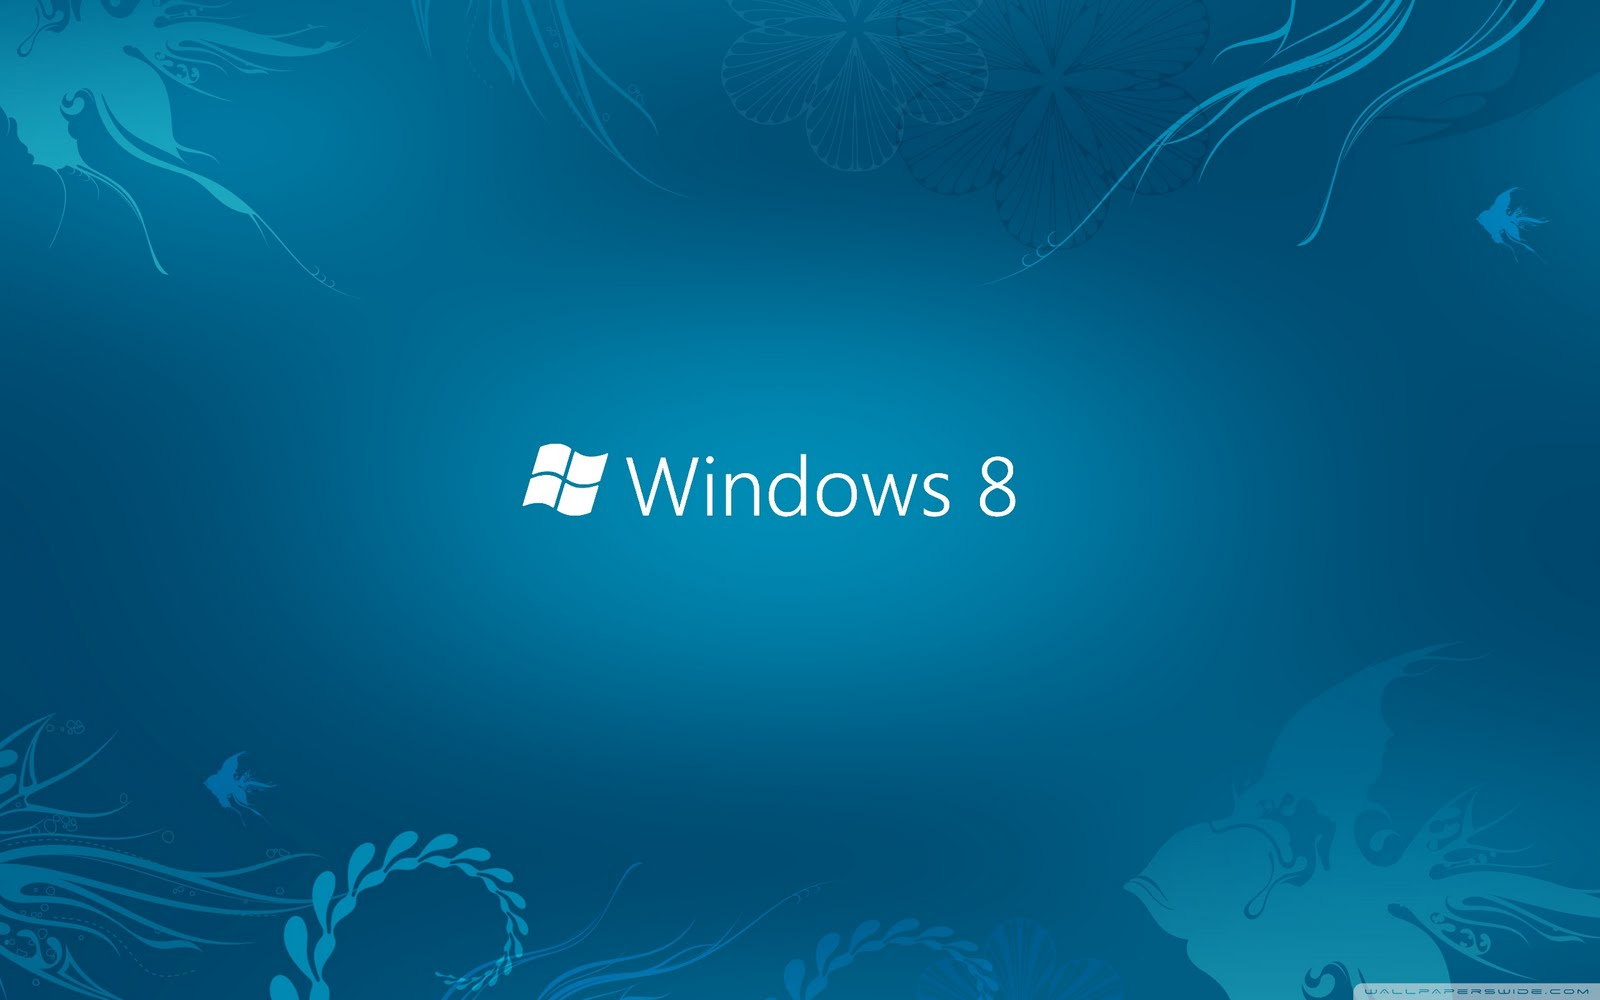 Windows 8 HD Wallpapers - HD Wallpapers